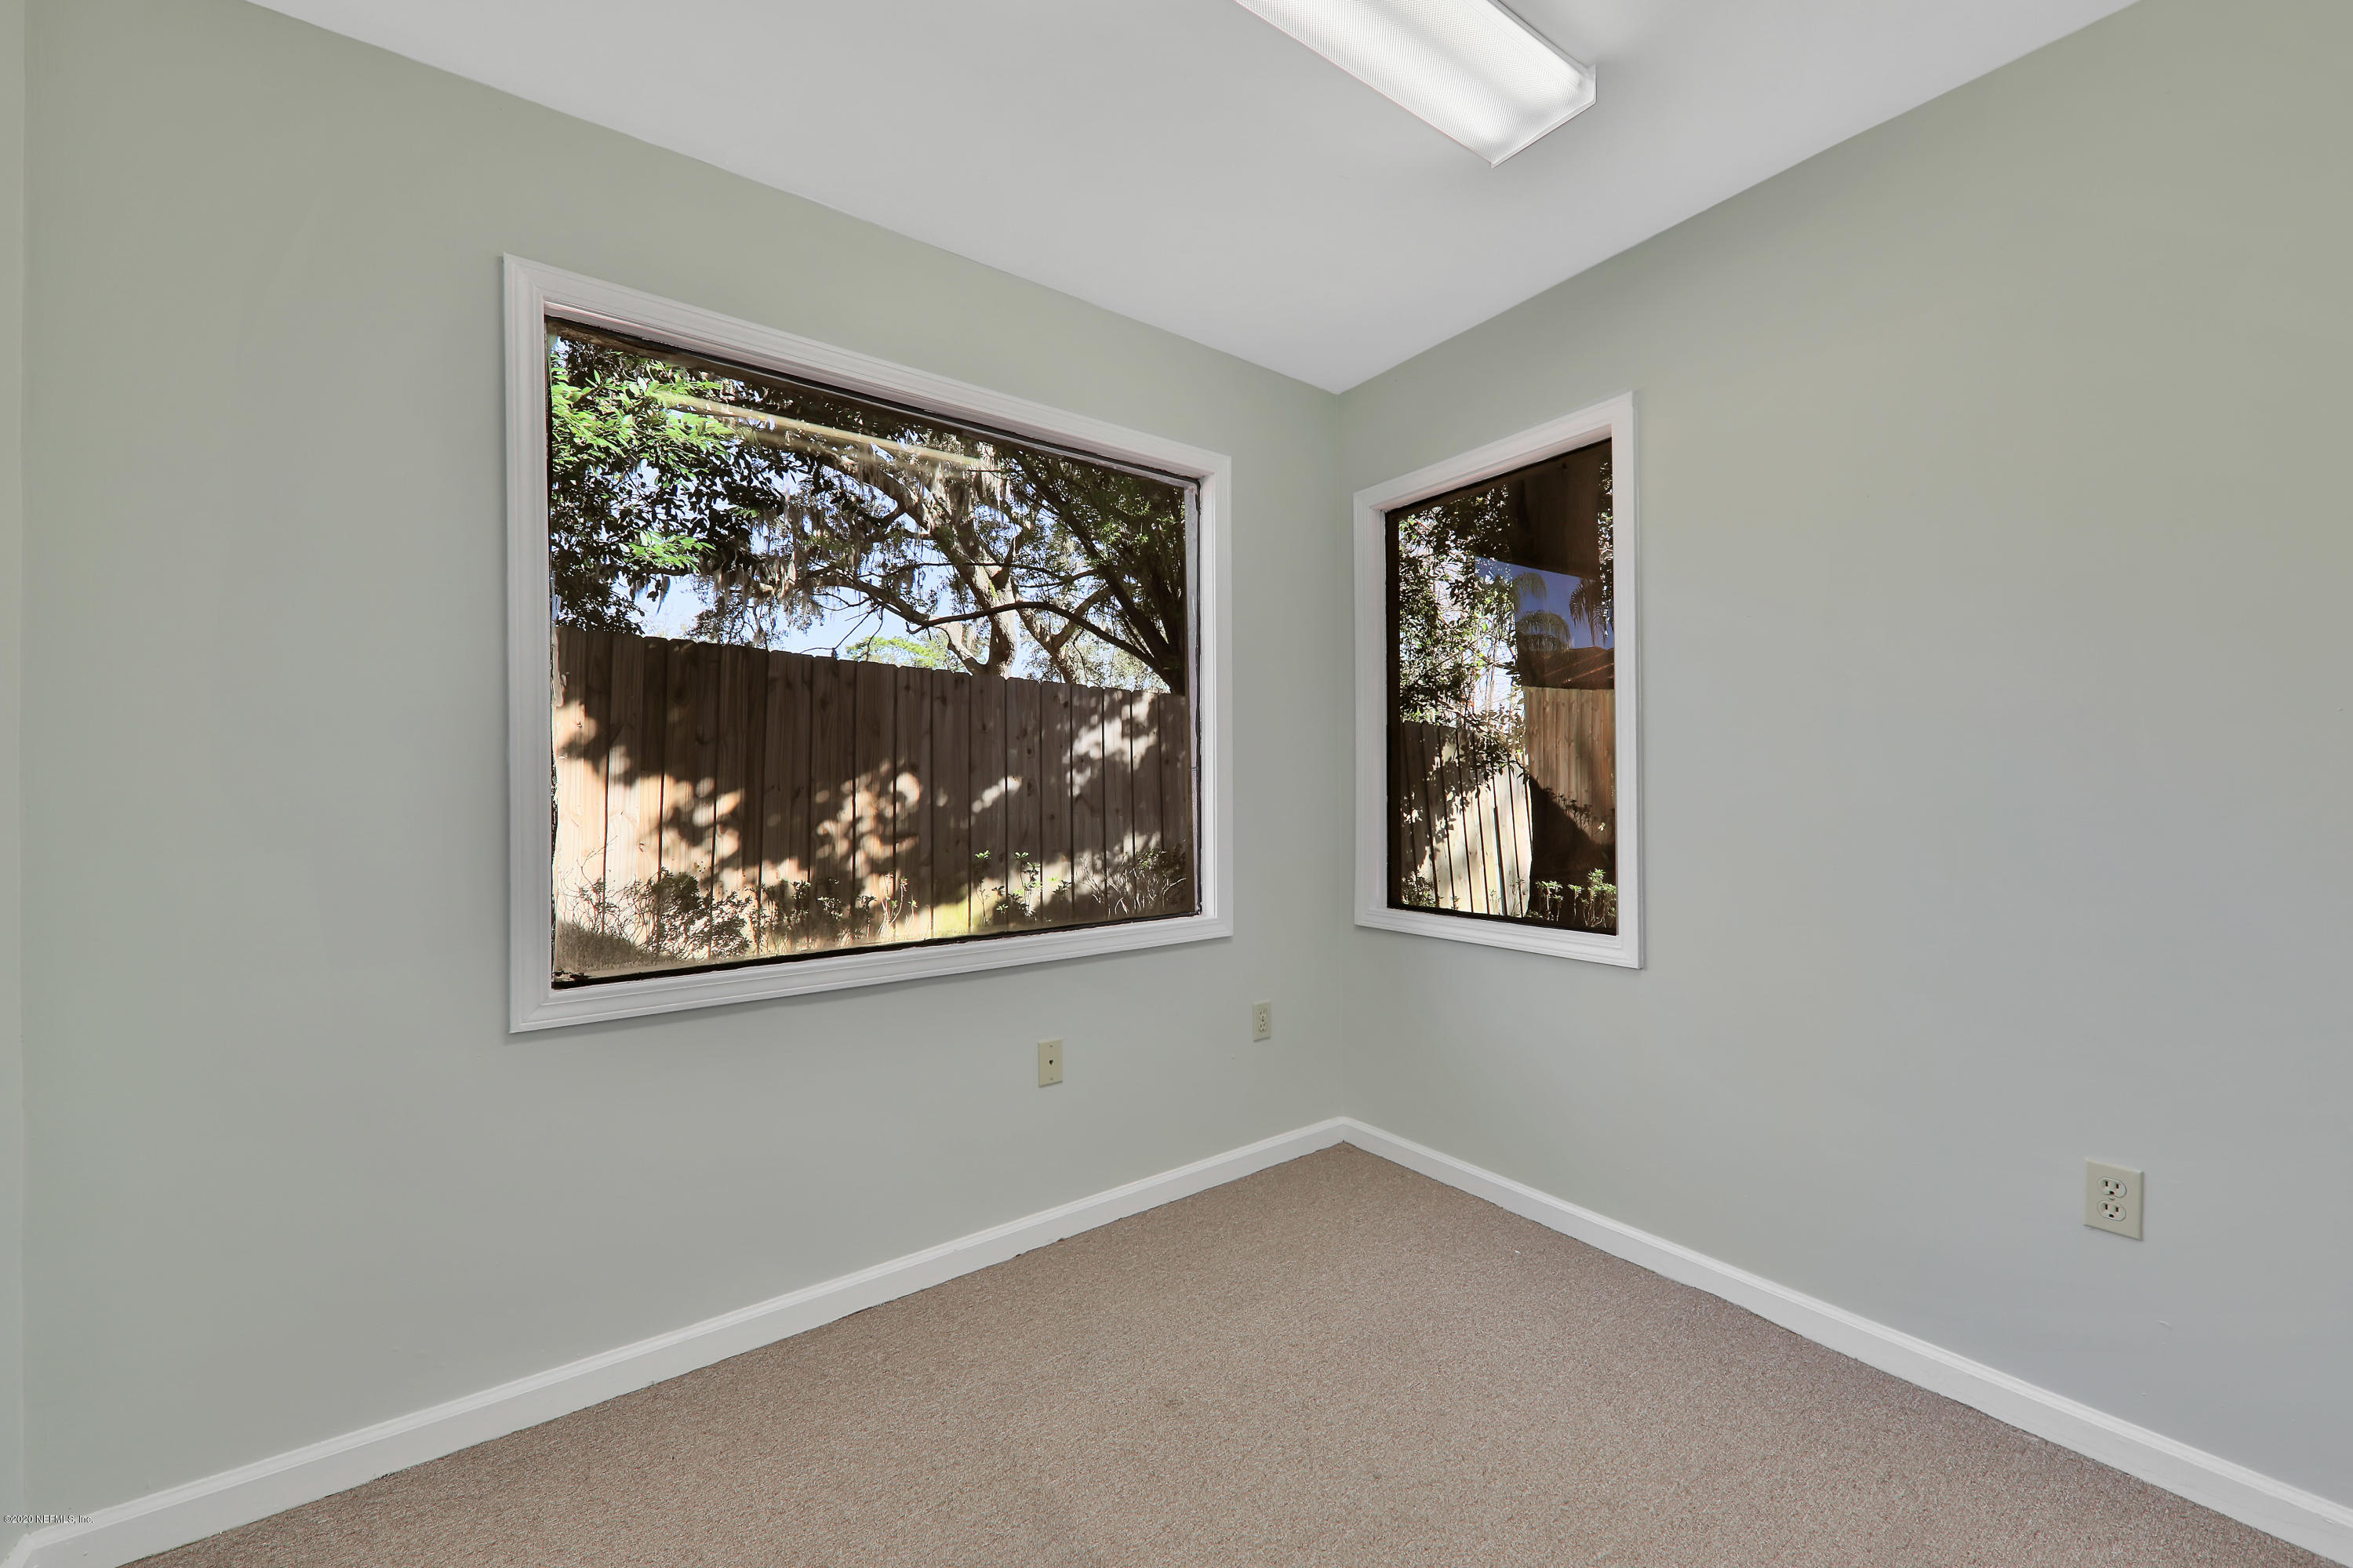 Image 11 of 35 For 4043 Baymeadows Rd